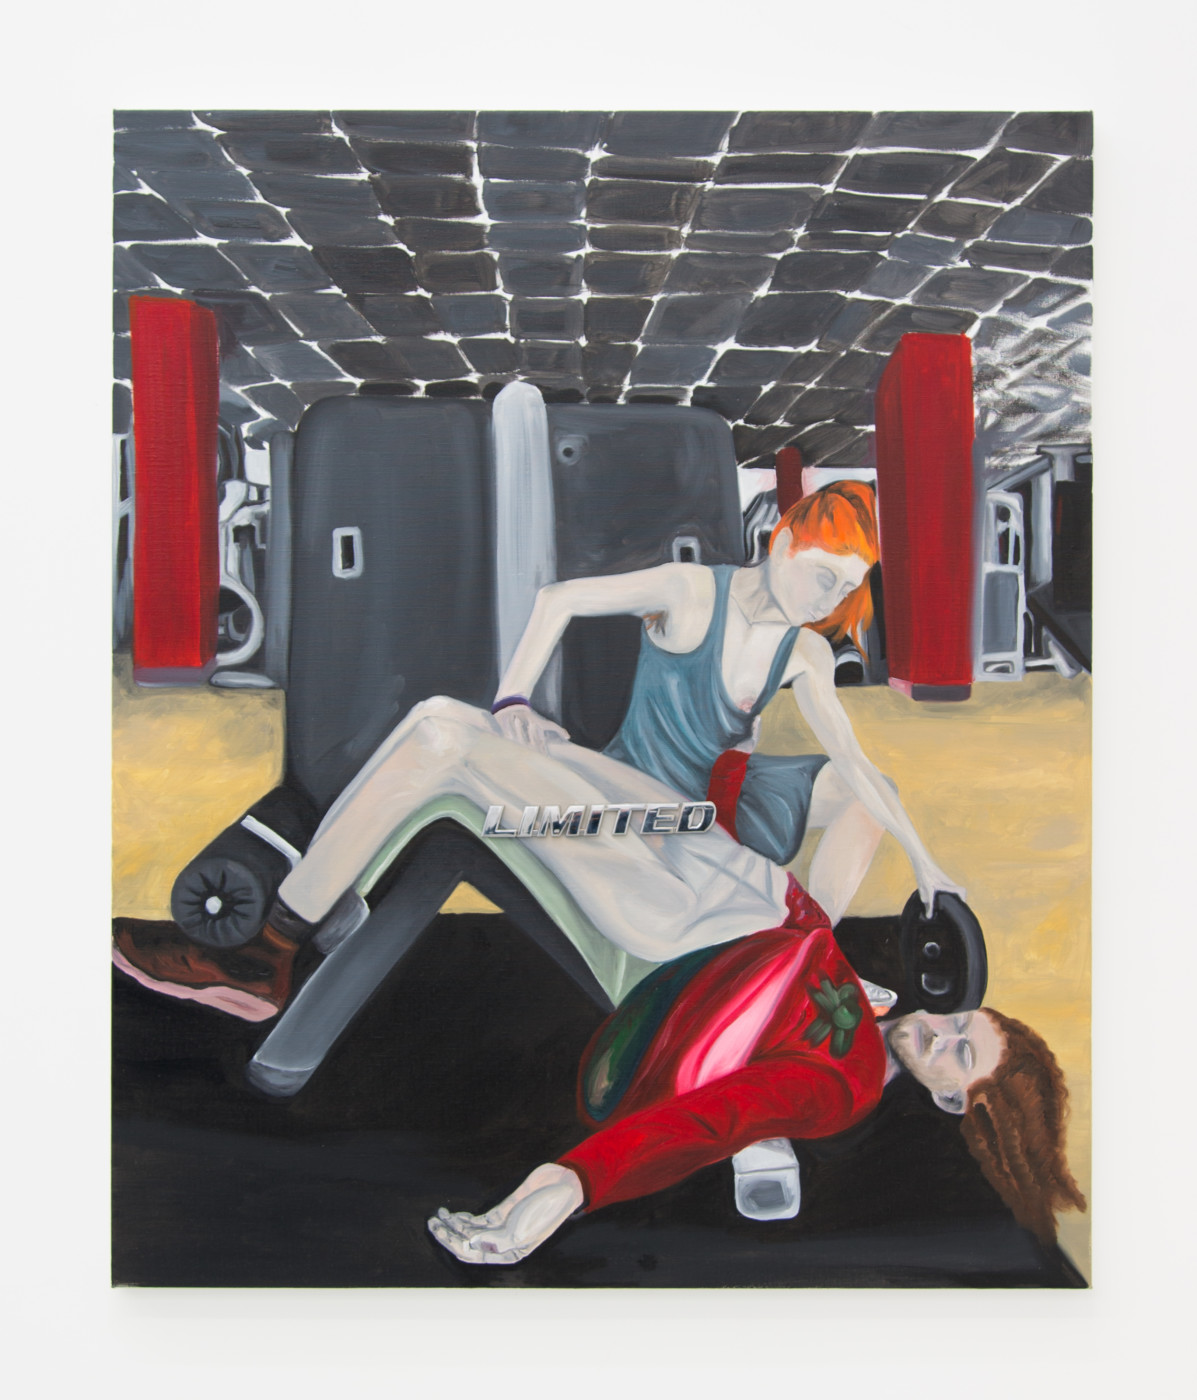 AUTOFELATIO  The Fitness Lesson - Limited Auto-improvement , 2018 Oil on linen, chromed plastic lettering 110 x 95 cm / 43.3 x 37.4 in  Frieda Toranzo Jaeger